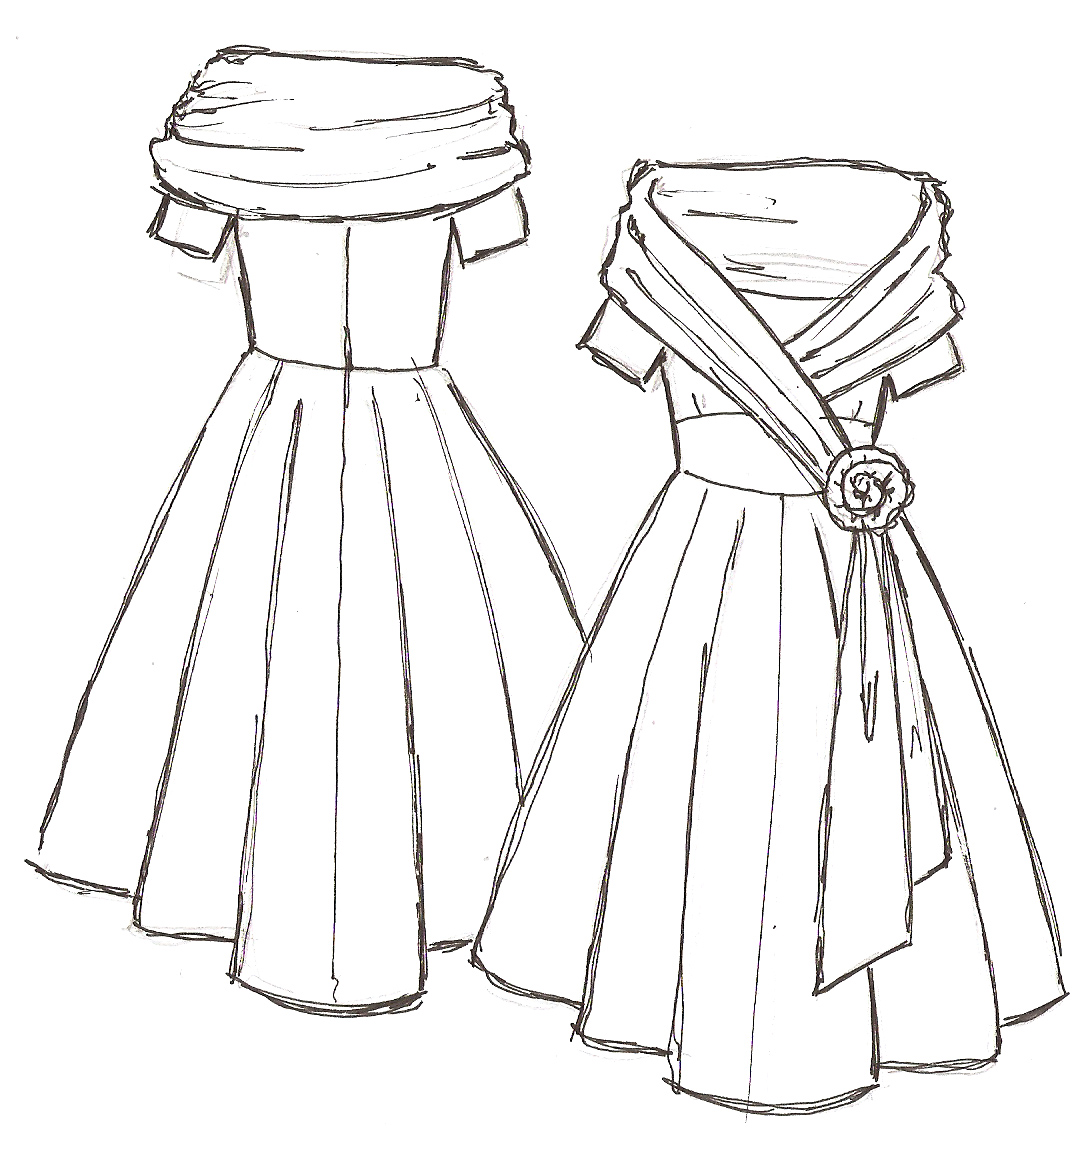 Prom Dresses Drawing at GetDrawings.com | Free for personal use Prom ...